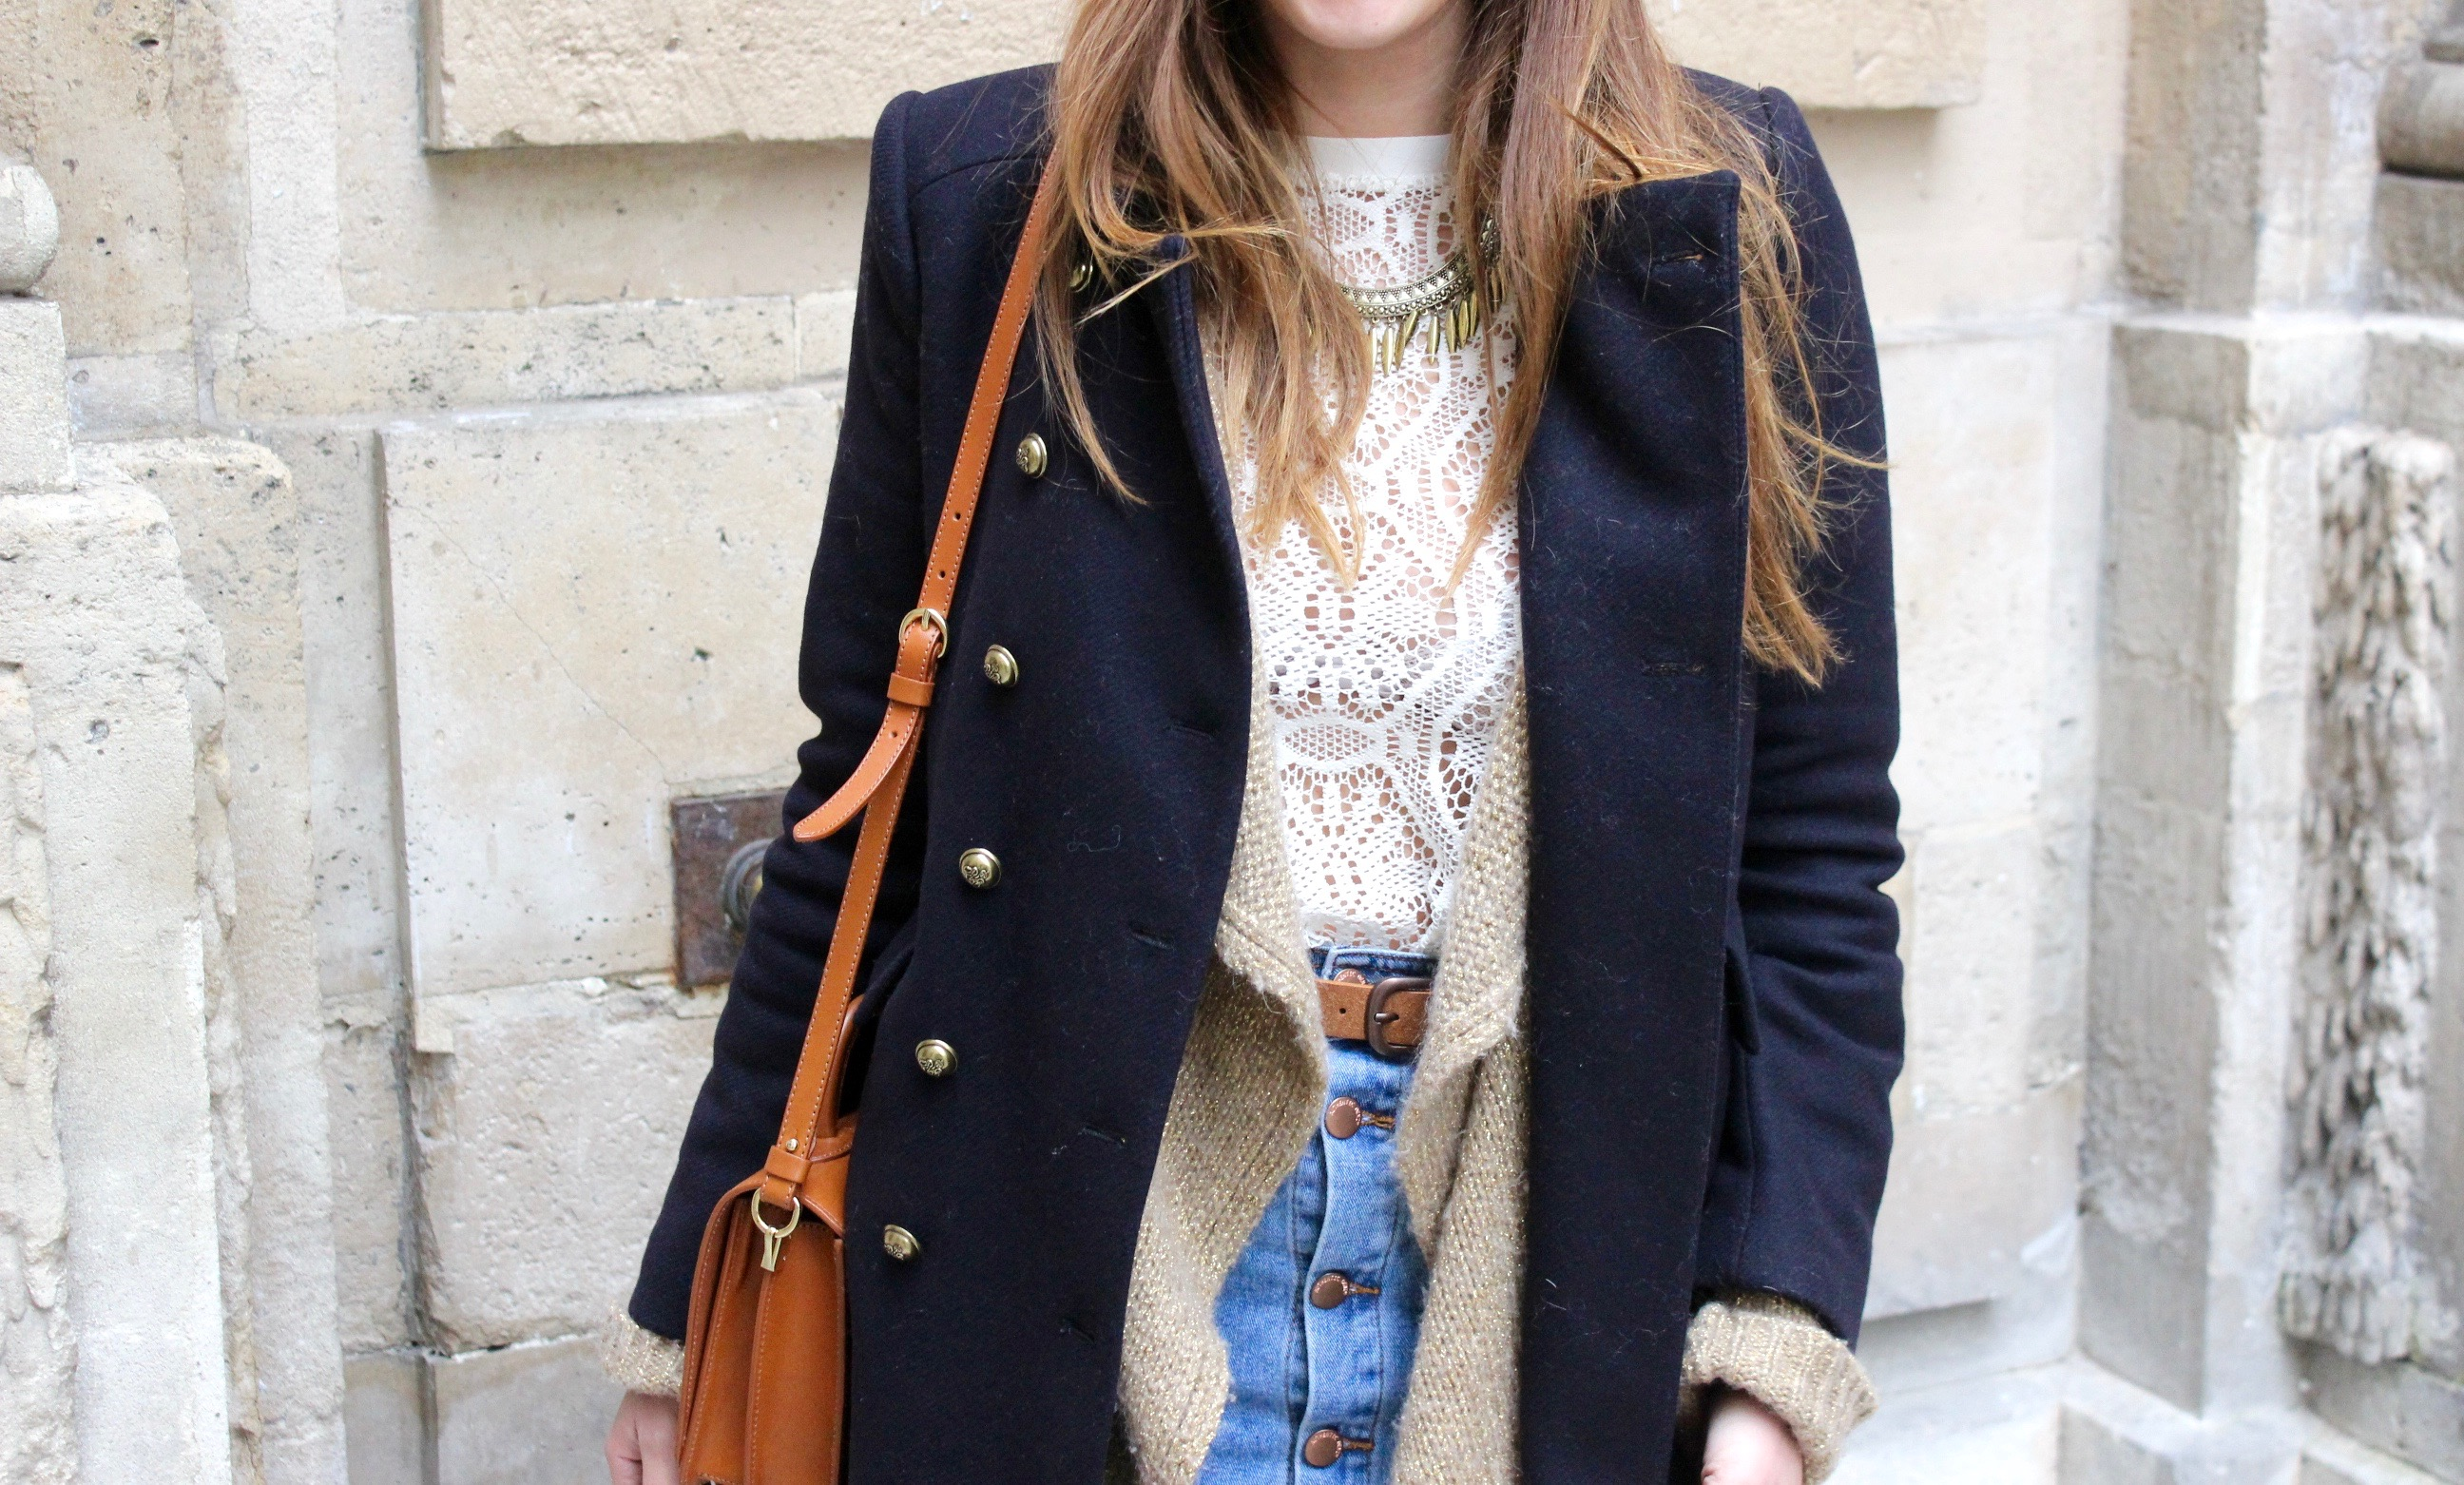 Blog-This-kind-Of-Girl-Mode-La-jupe-en-jean-7